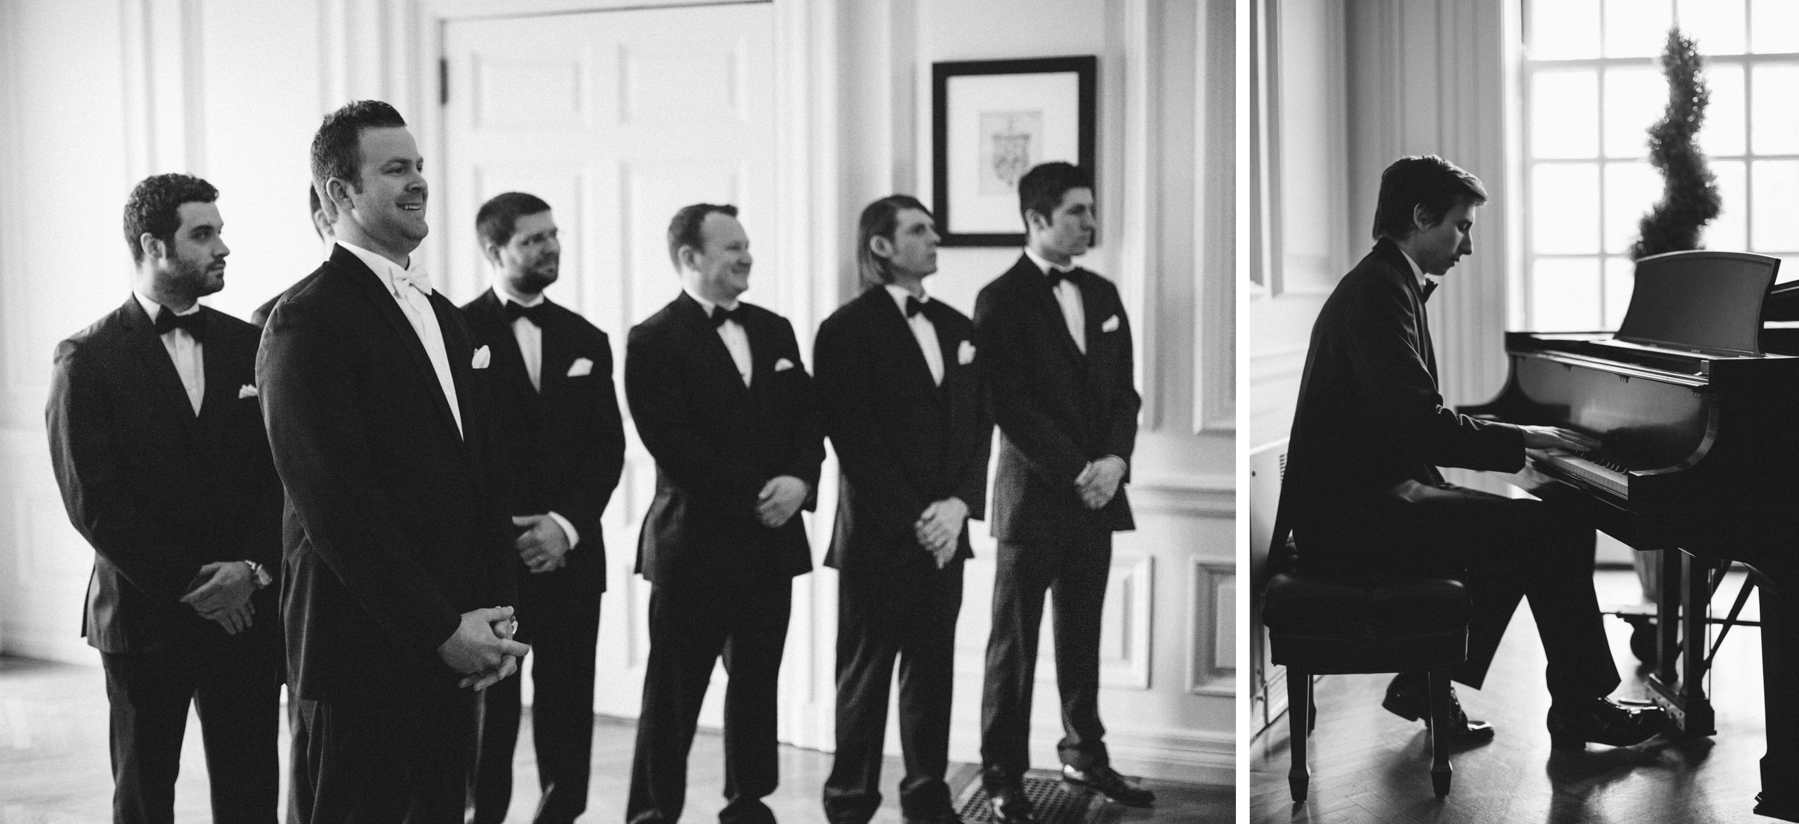 groom watching bride come down aisle